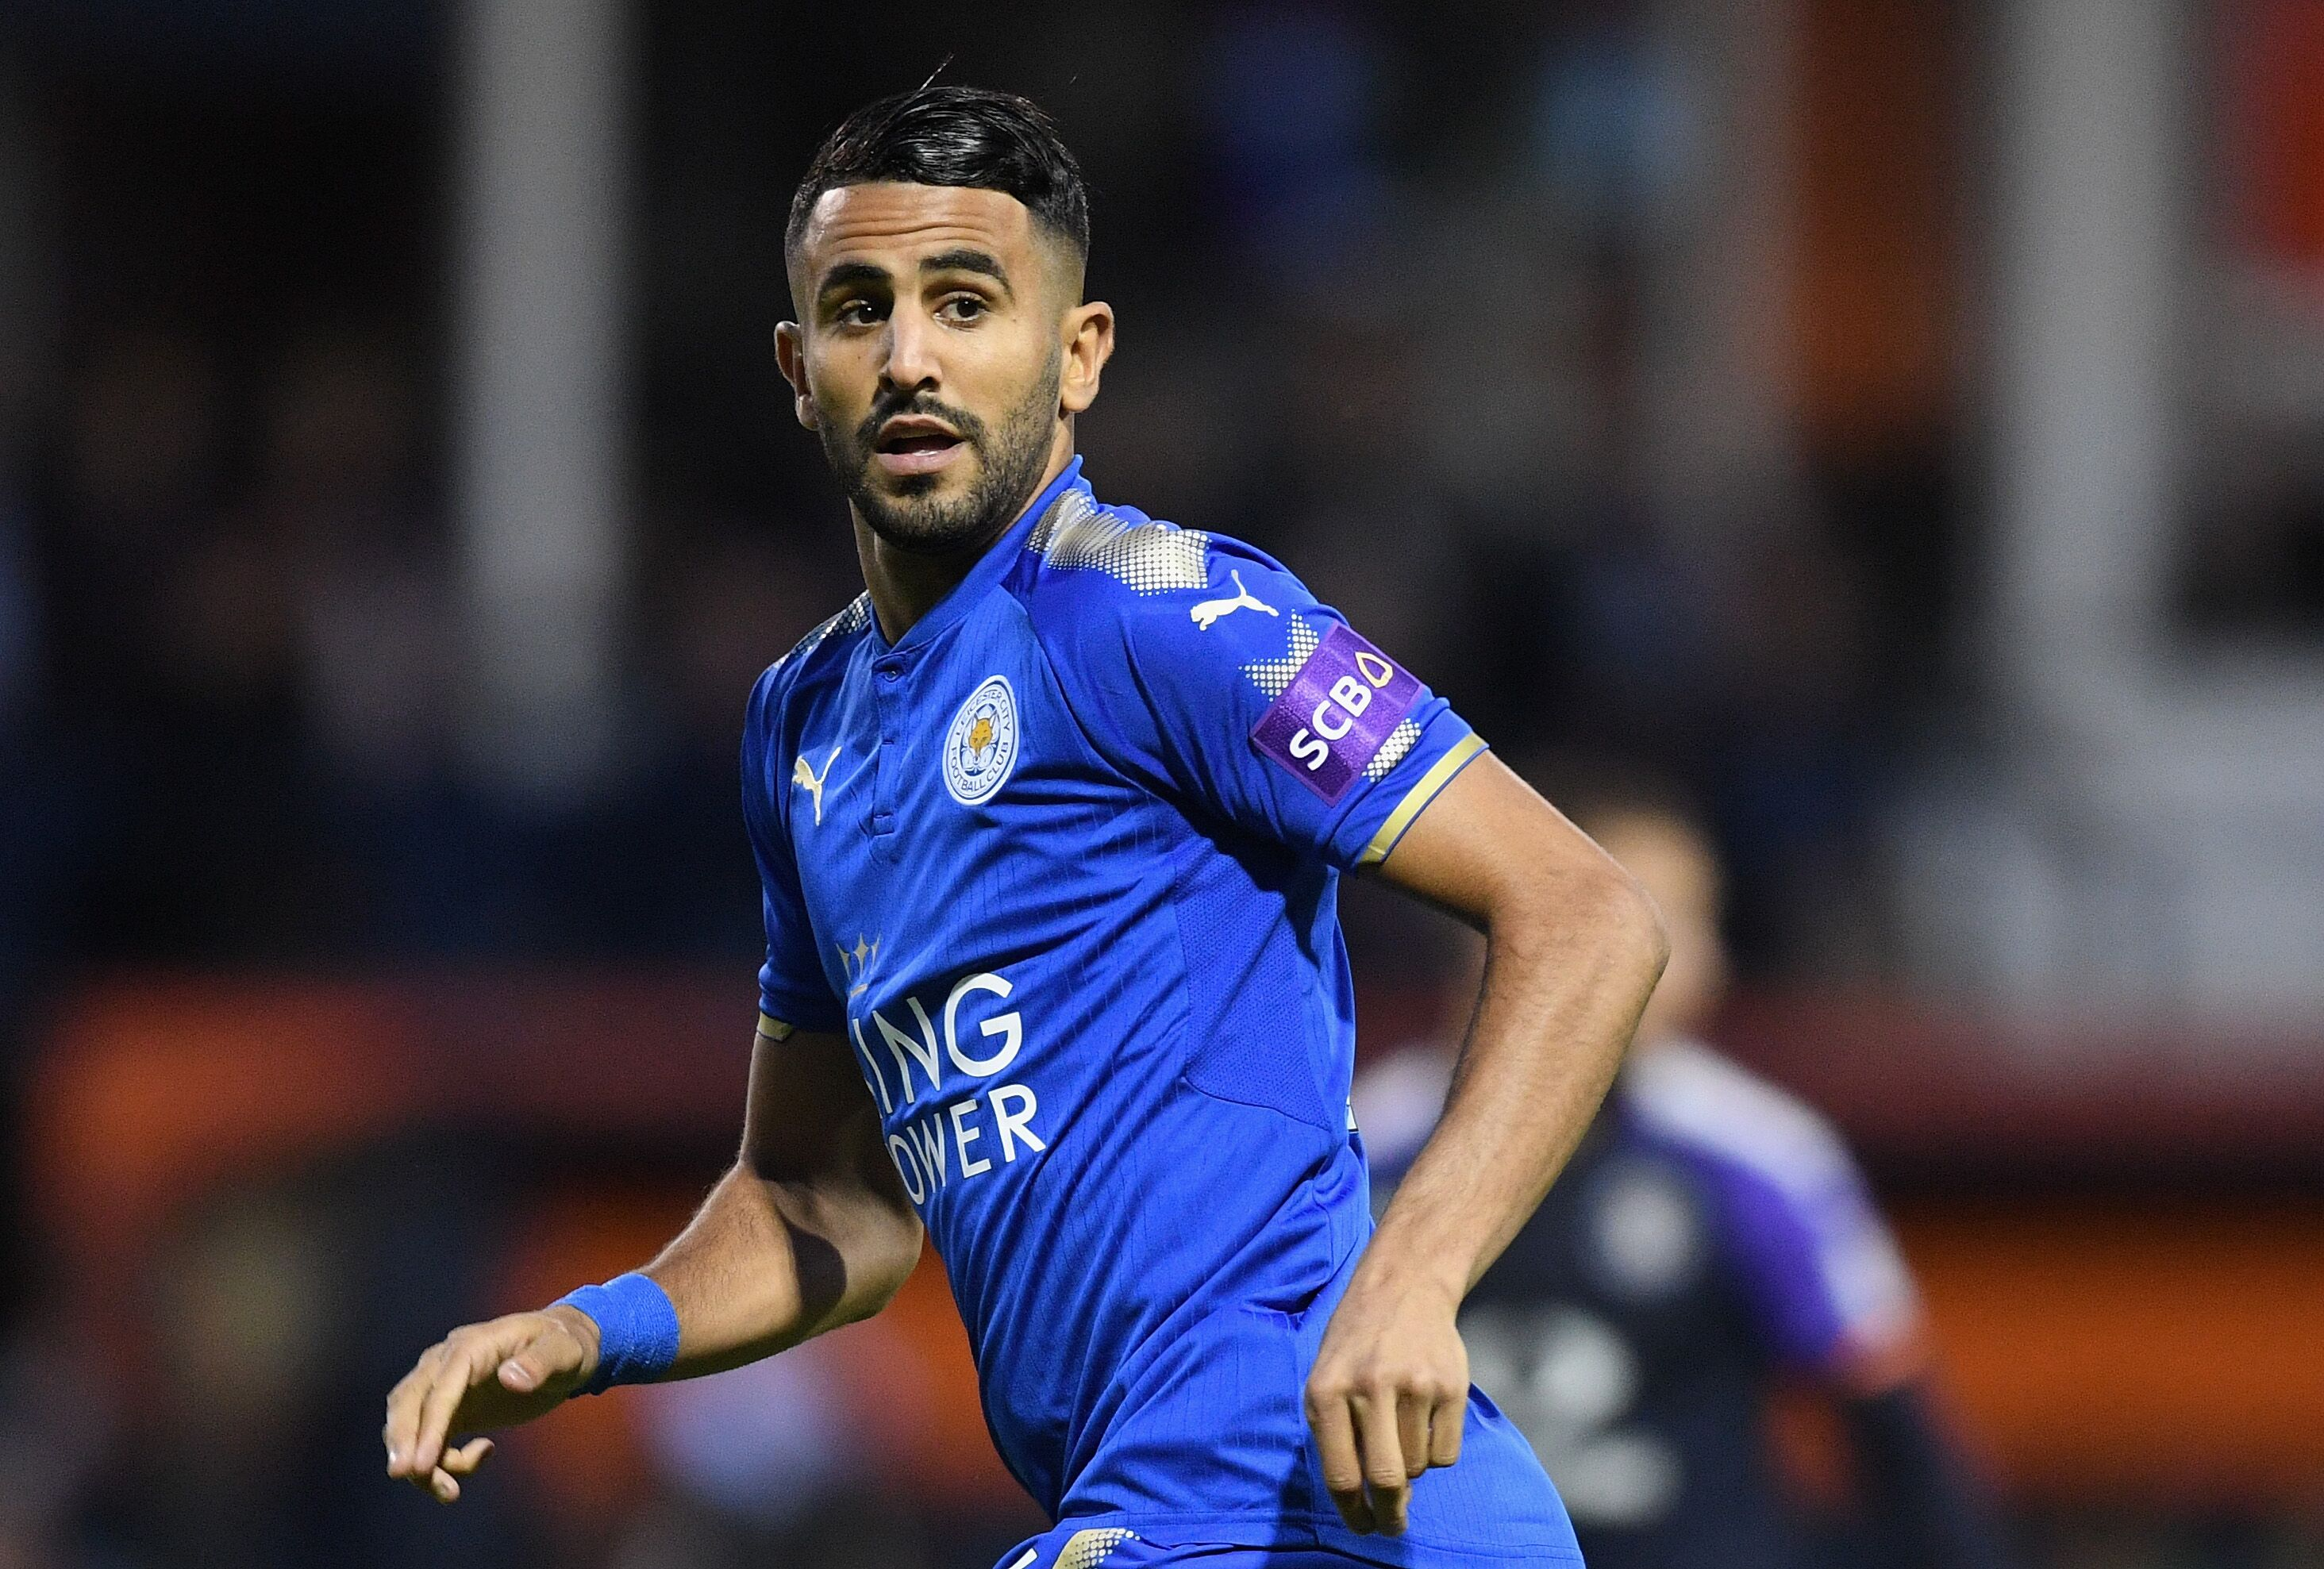 AS Roma remain upbeat about signing Riyad Mahrez from Leicester City